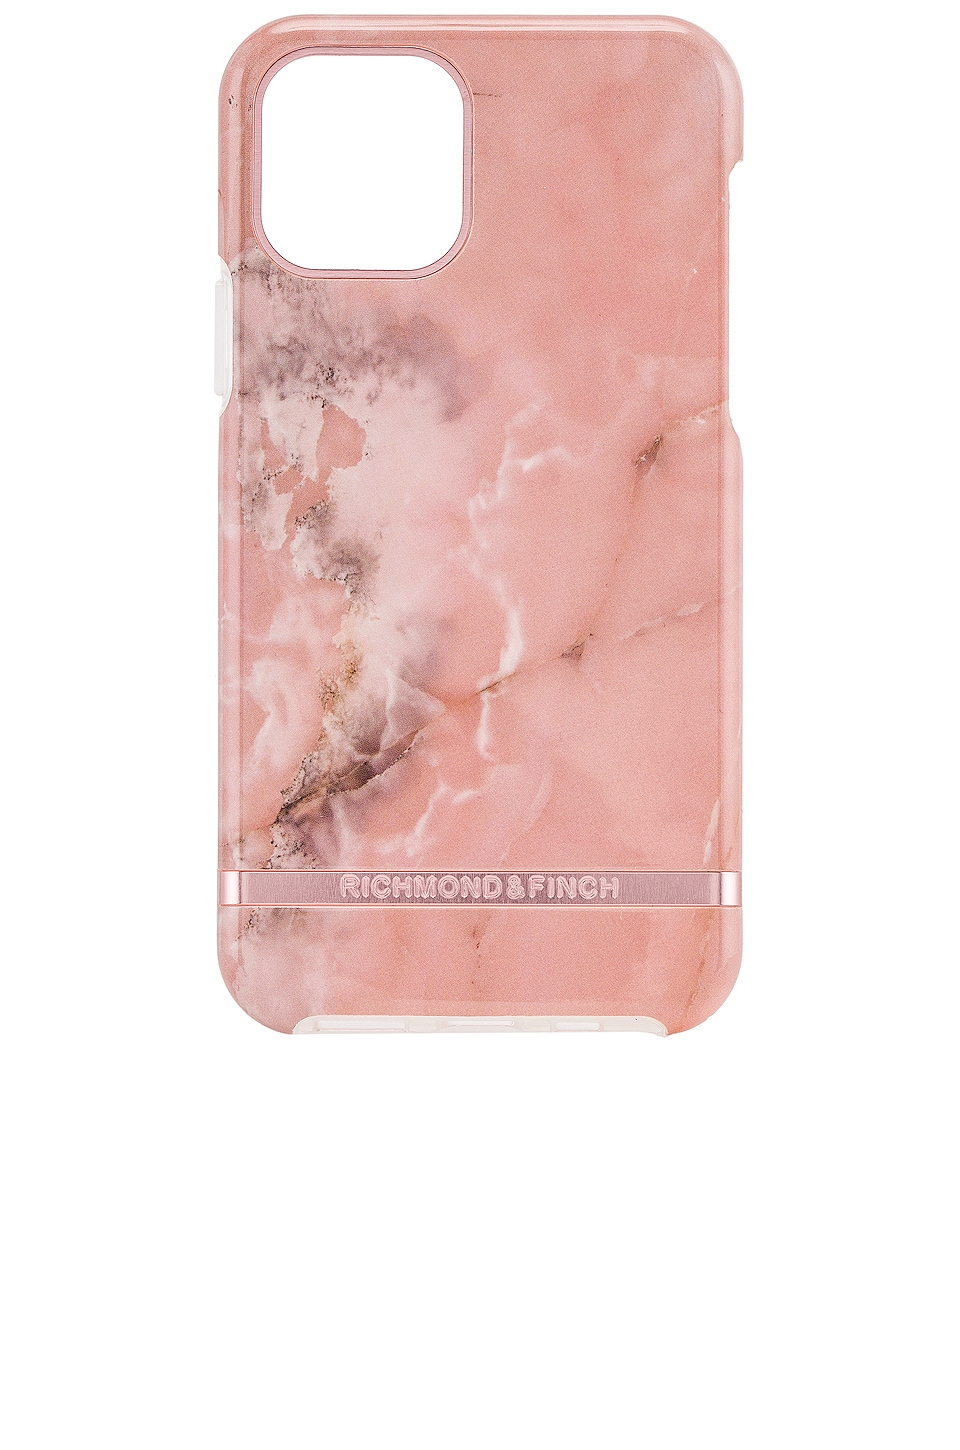 Richmond & Finch Black Marble iPhone 11 Pro Case in Pink Marble